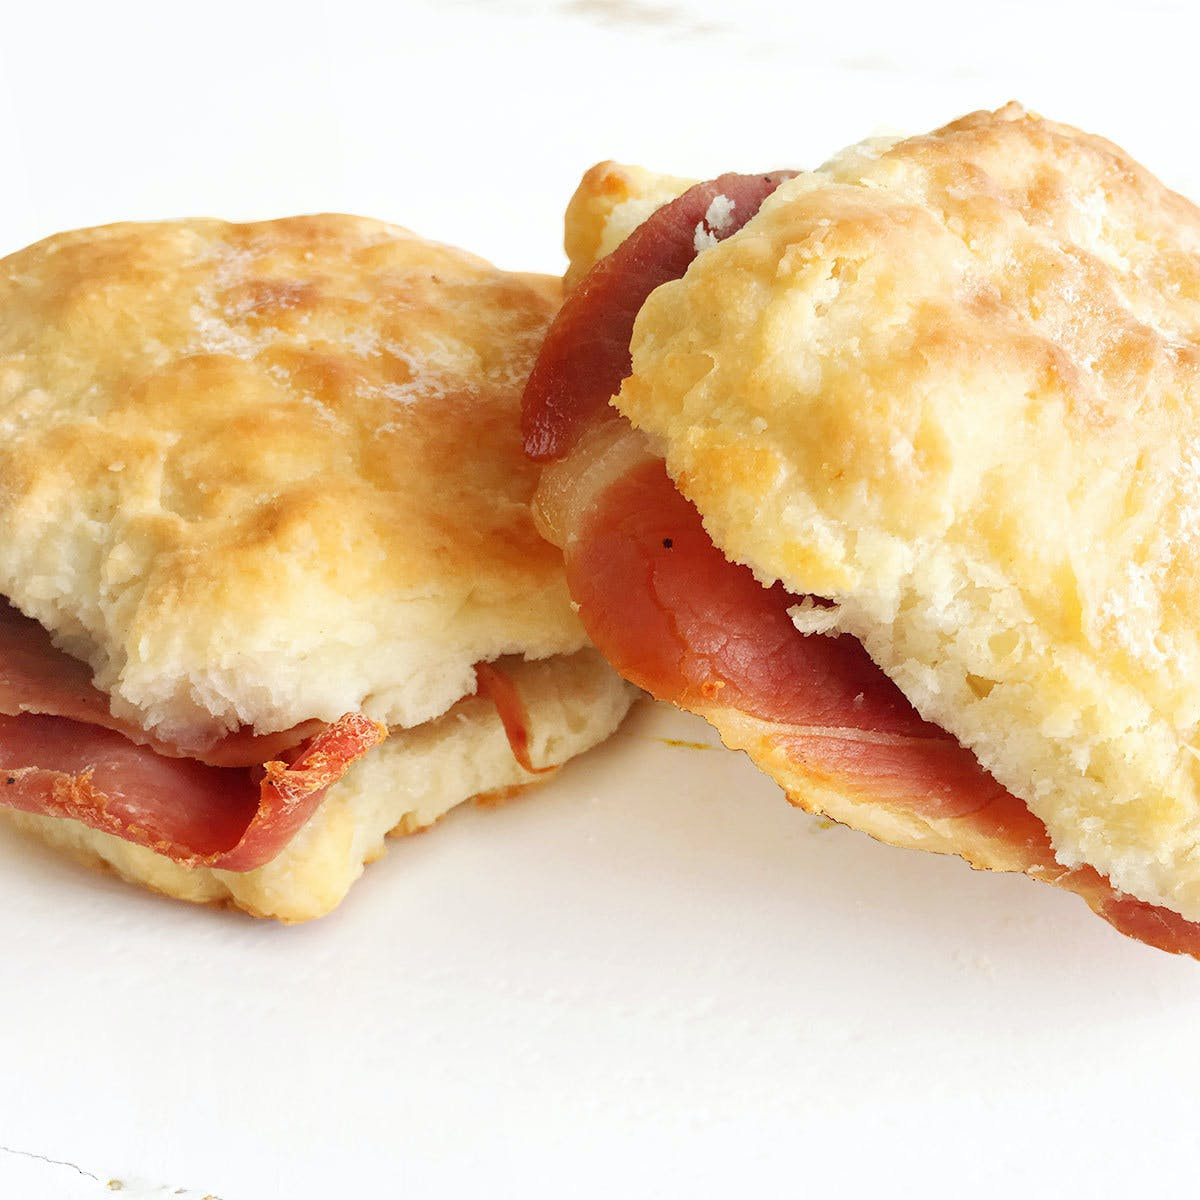 Country Ham Biscuit Sandwich Kit By Sunrise Biscuit Kitchen Goldbelly